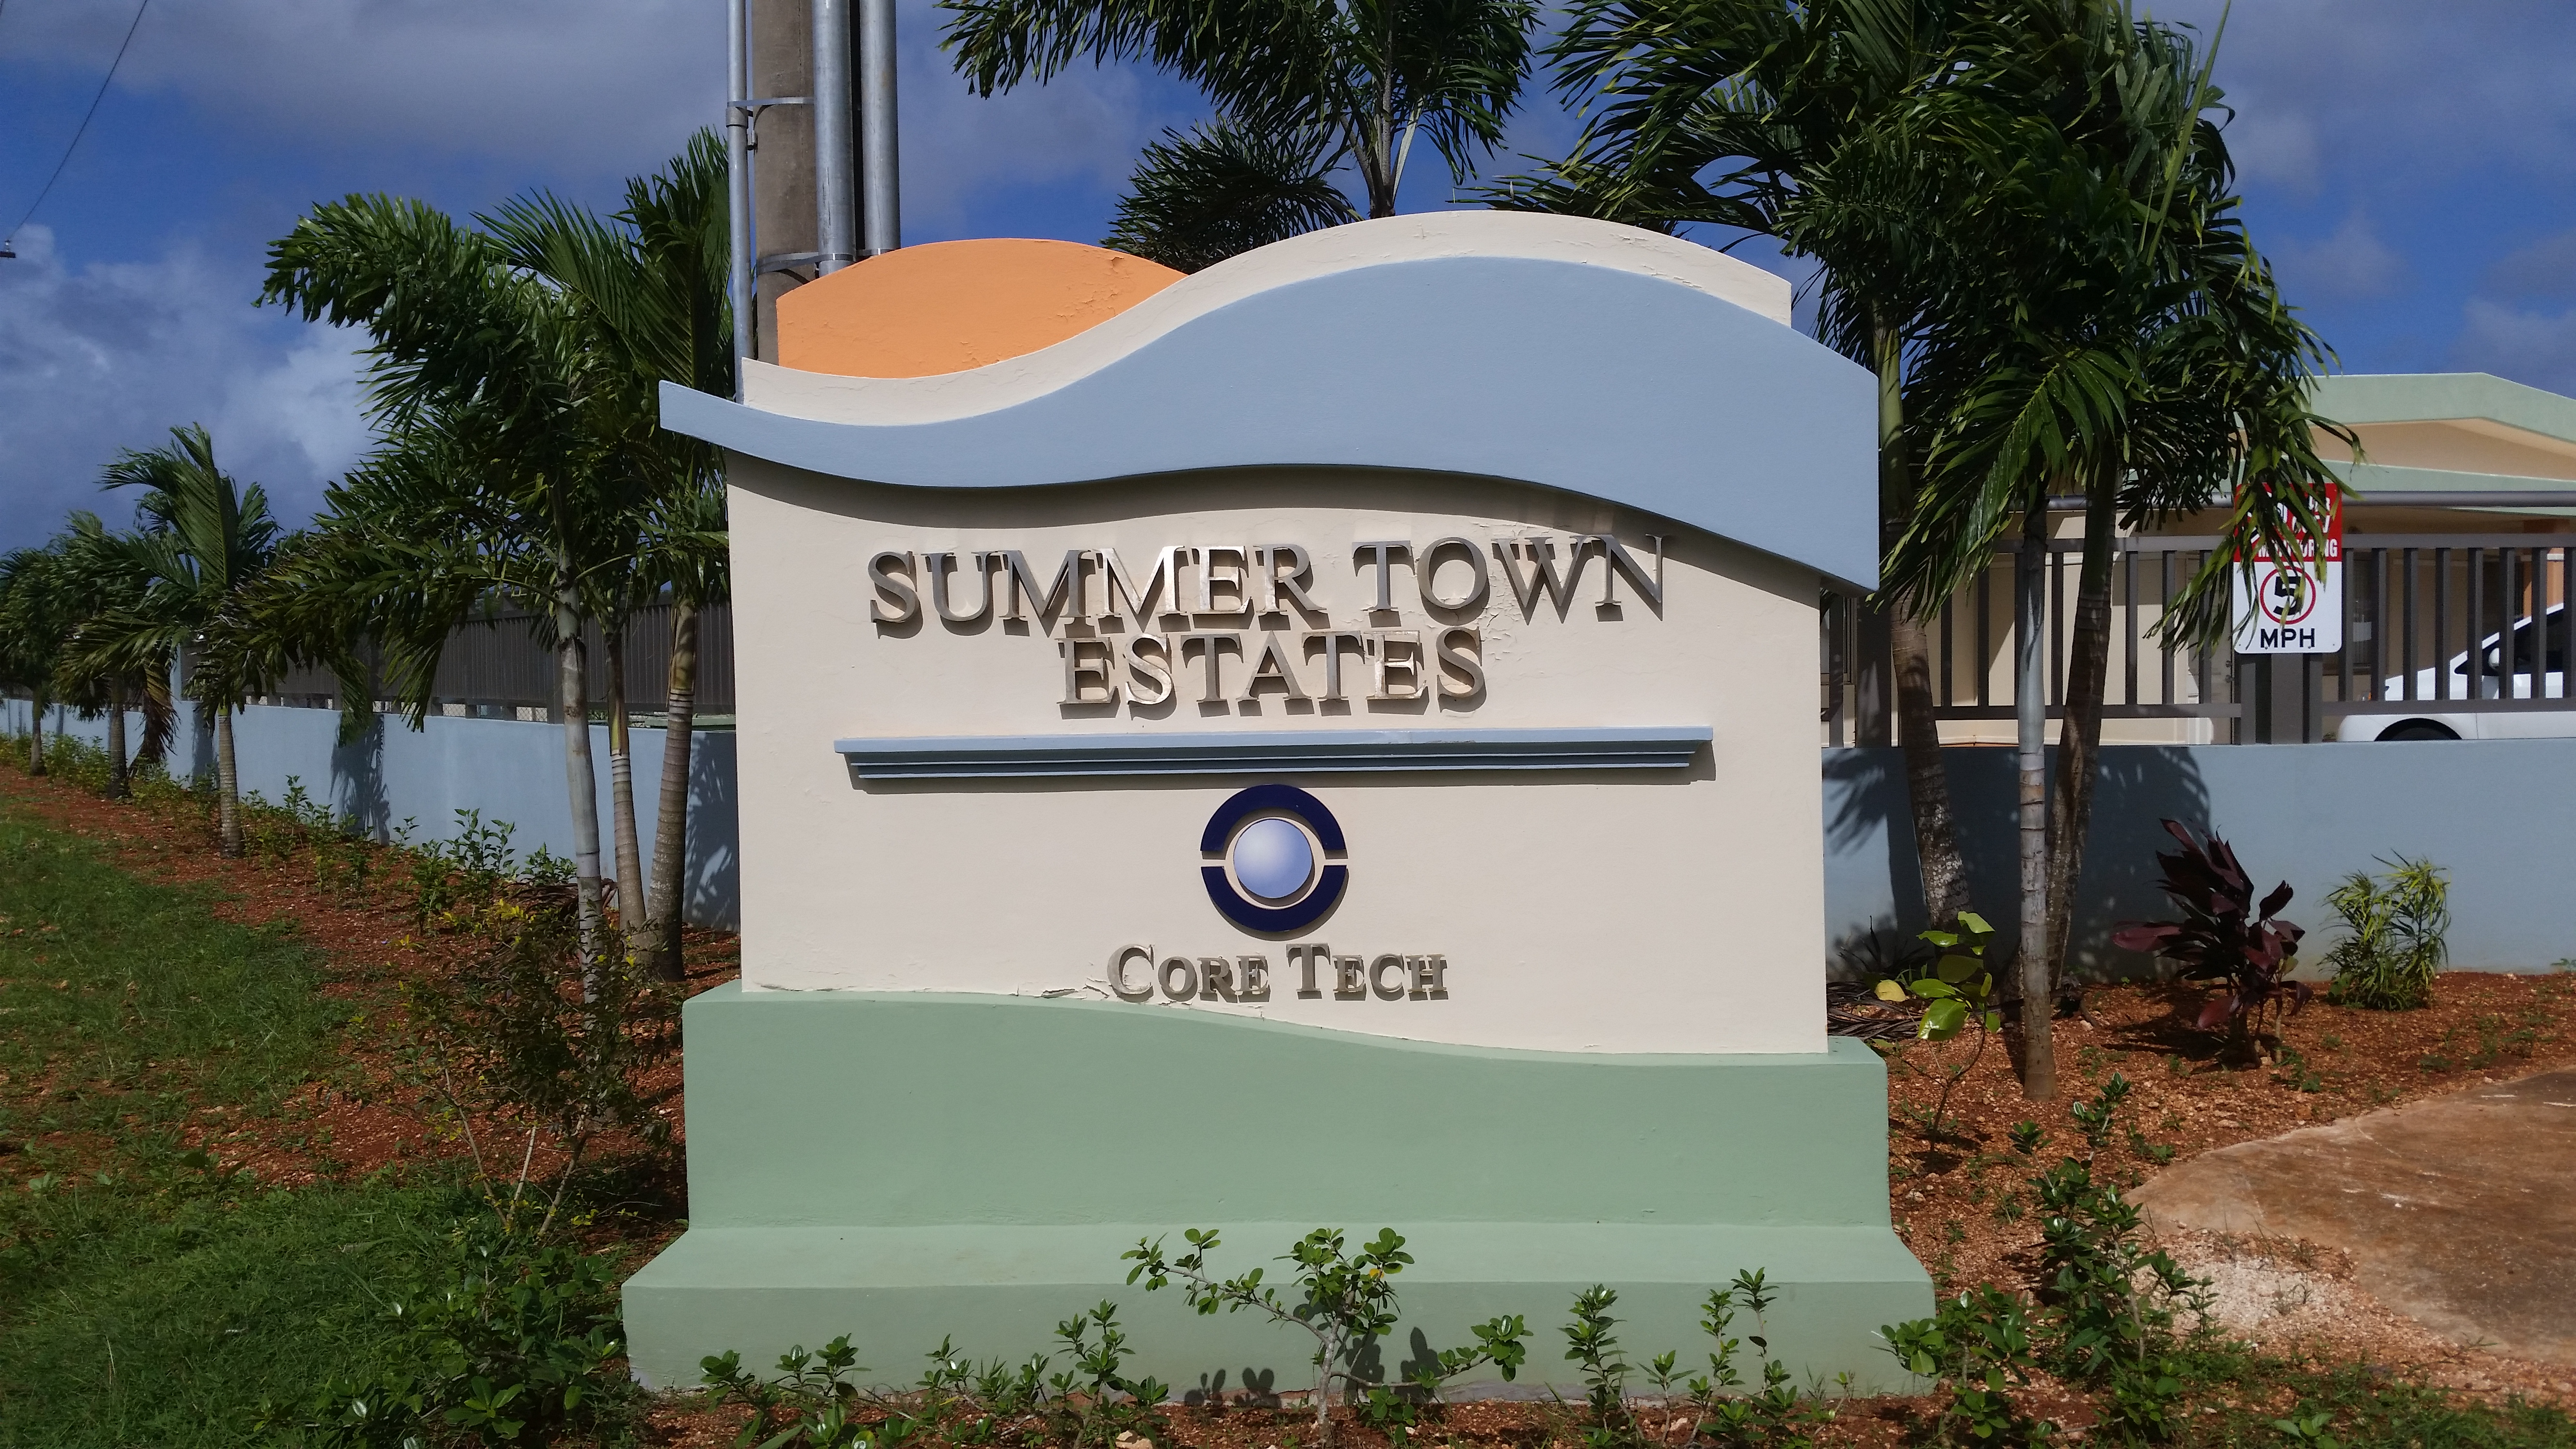 Summer Town Estates Welcome Sign